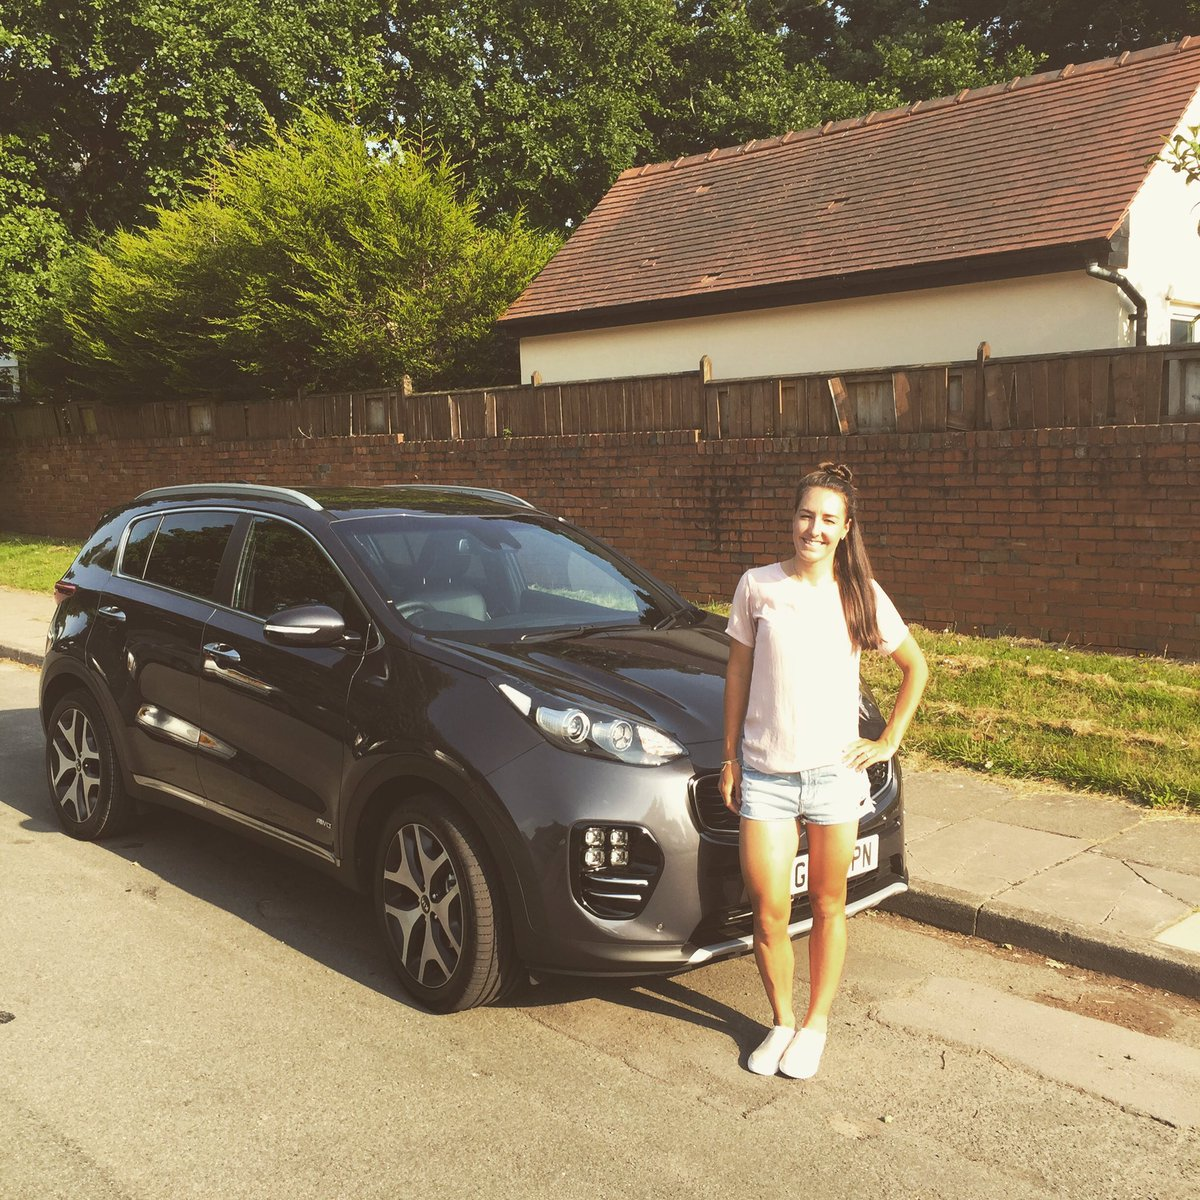 BEEP BEEP!!! NEW CAR DAY 🚘🚘  Thank you @hendygroup just what I need before my journey to the IOM for the nationals. #kiasportage #nationals